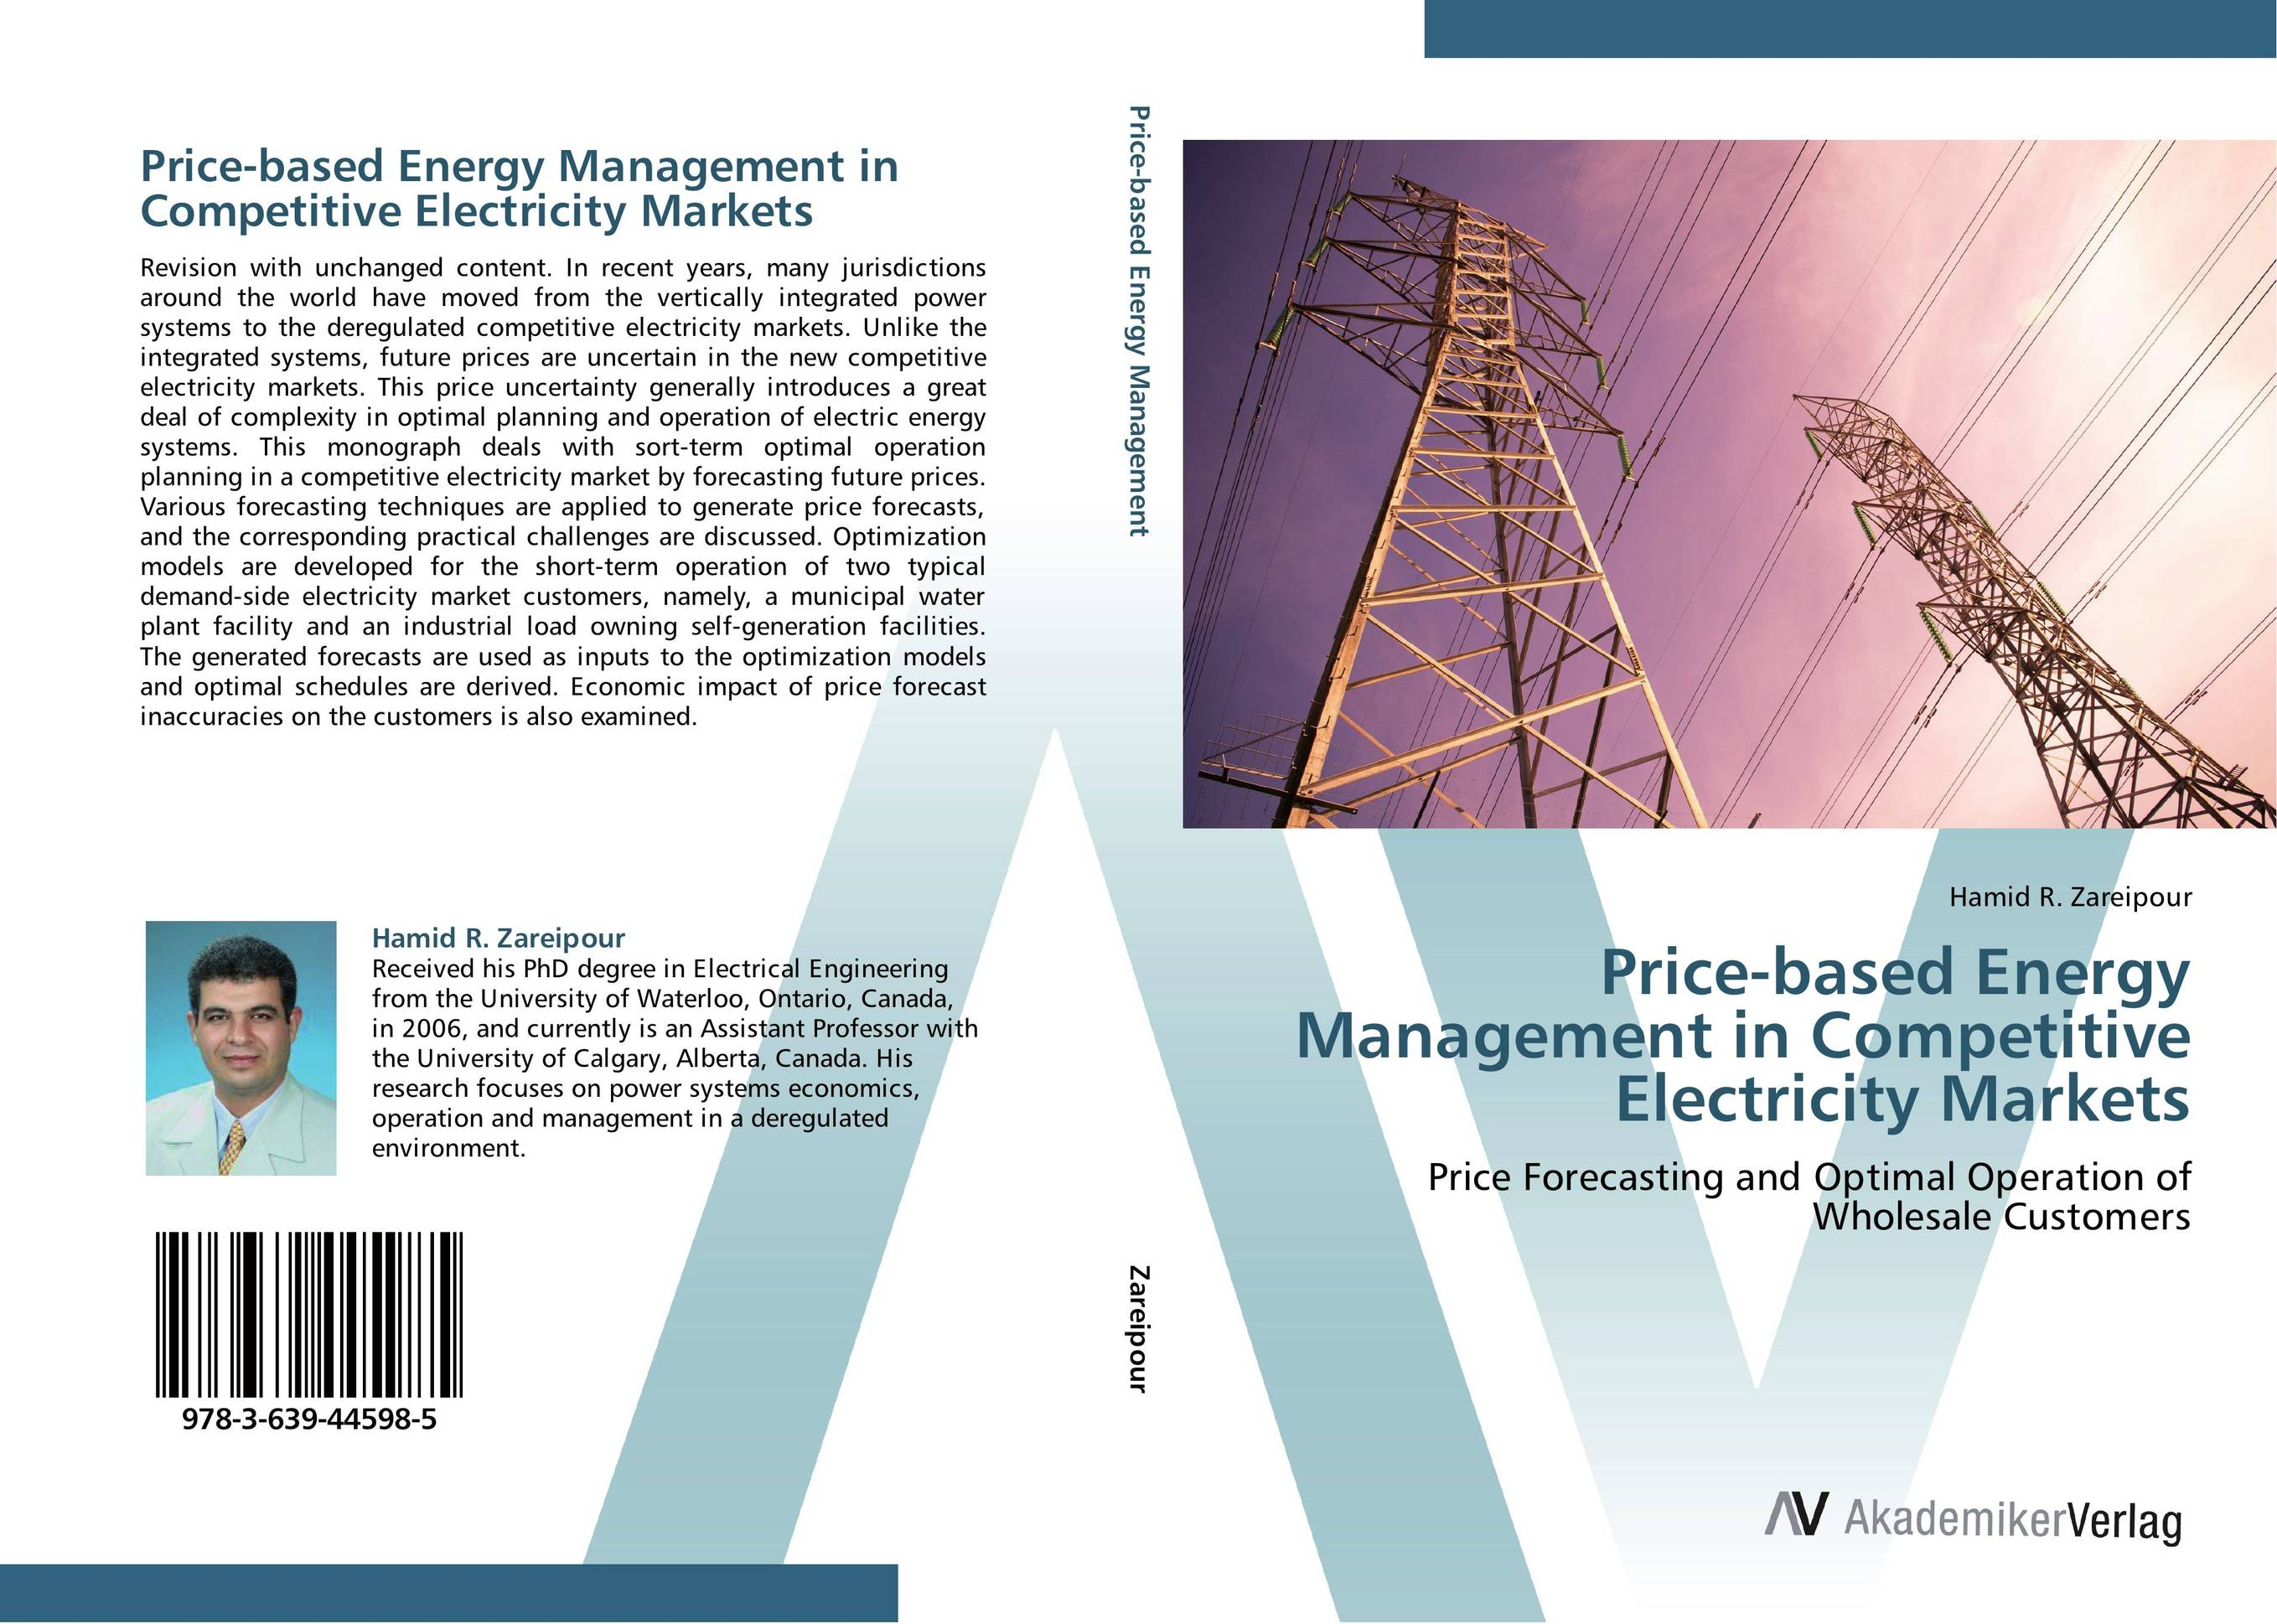 Price-based Energy Management in Competitive Electricity Markets